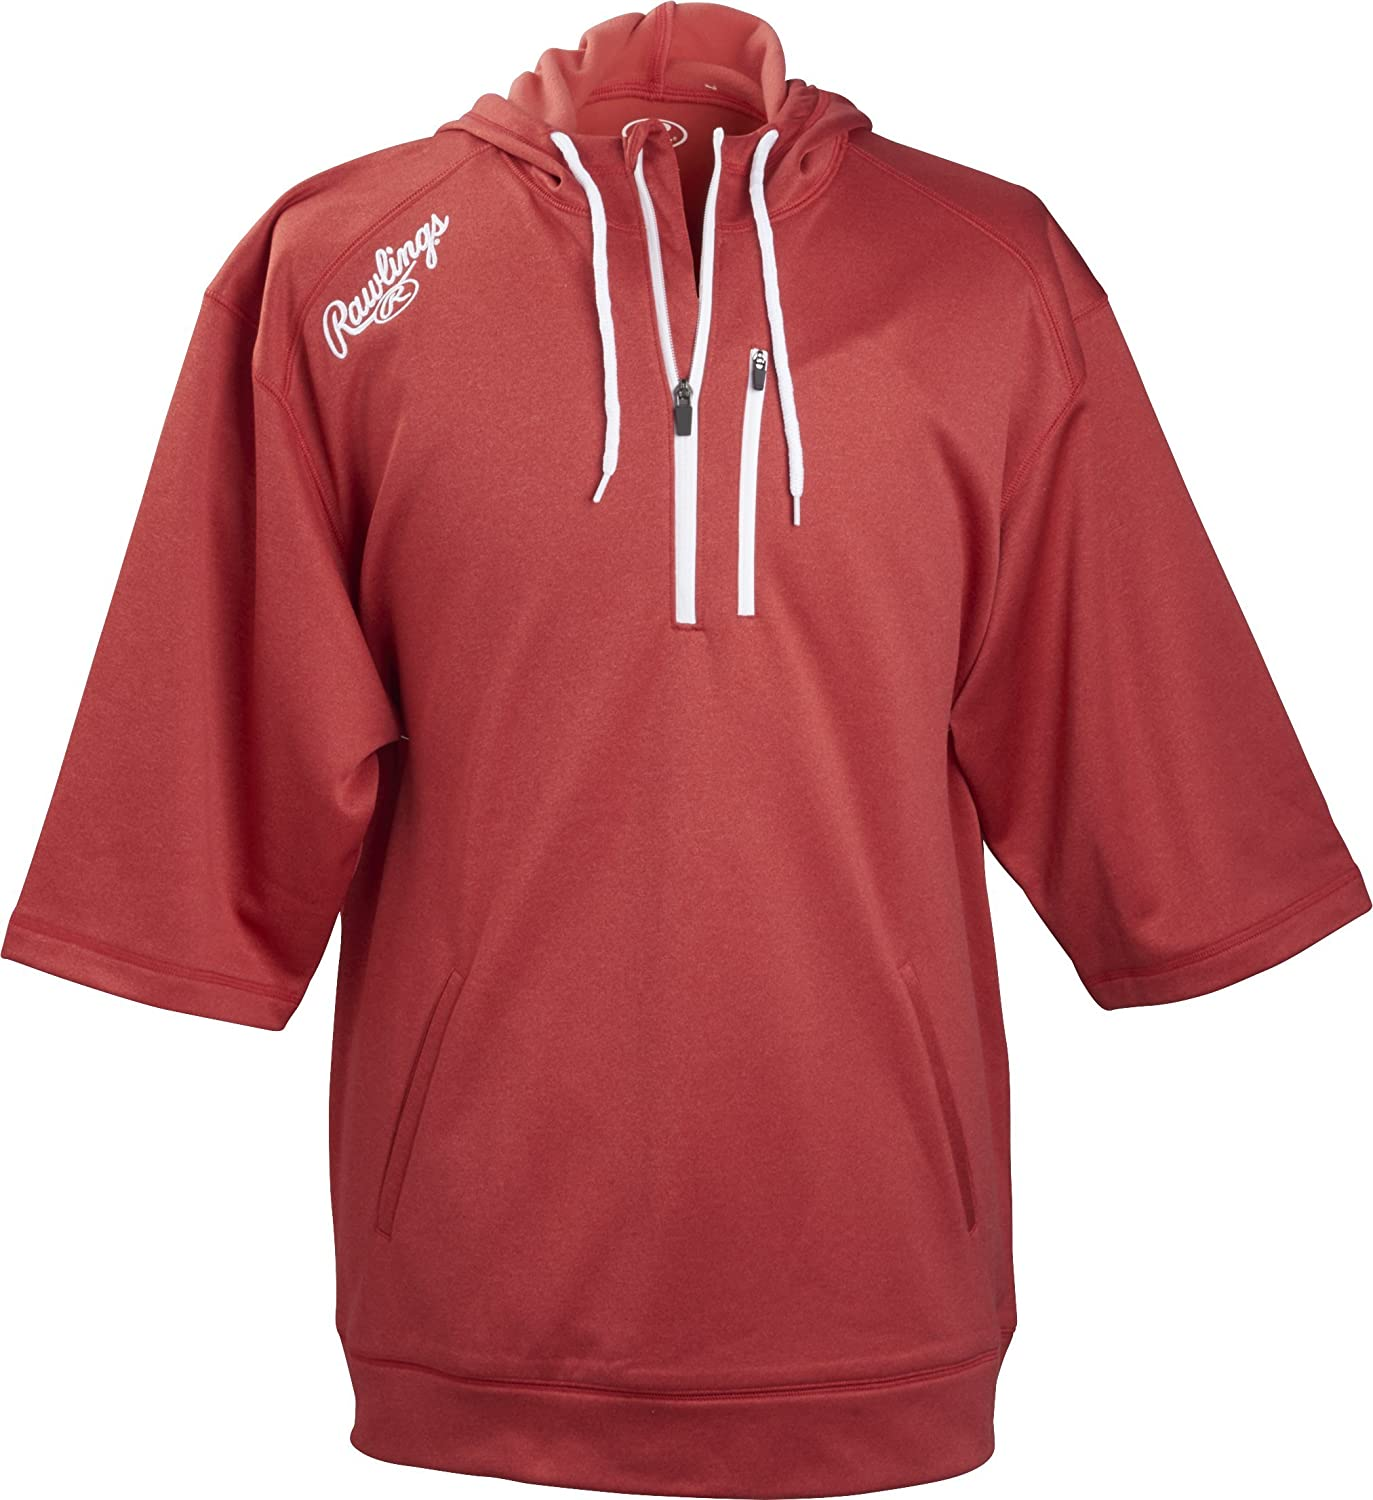 RAWLINGS Men's Short Sleeve Hoodie, Scarlet, 3X-Large